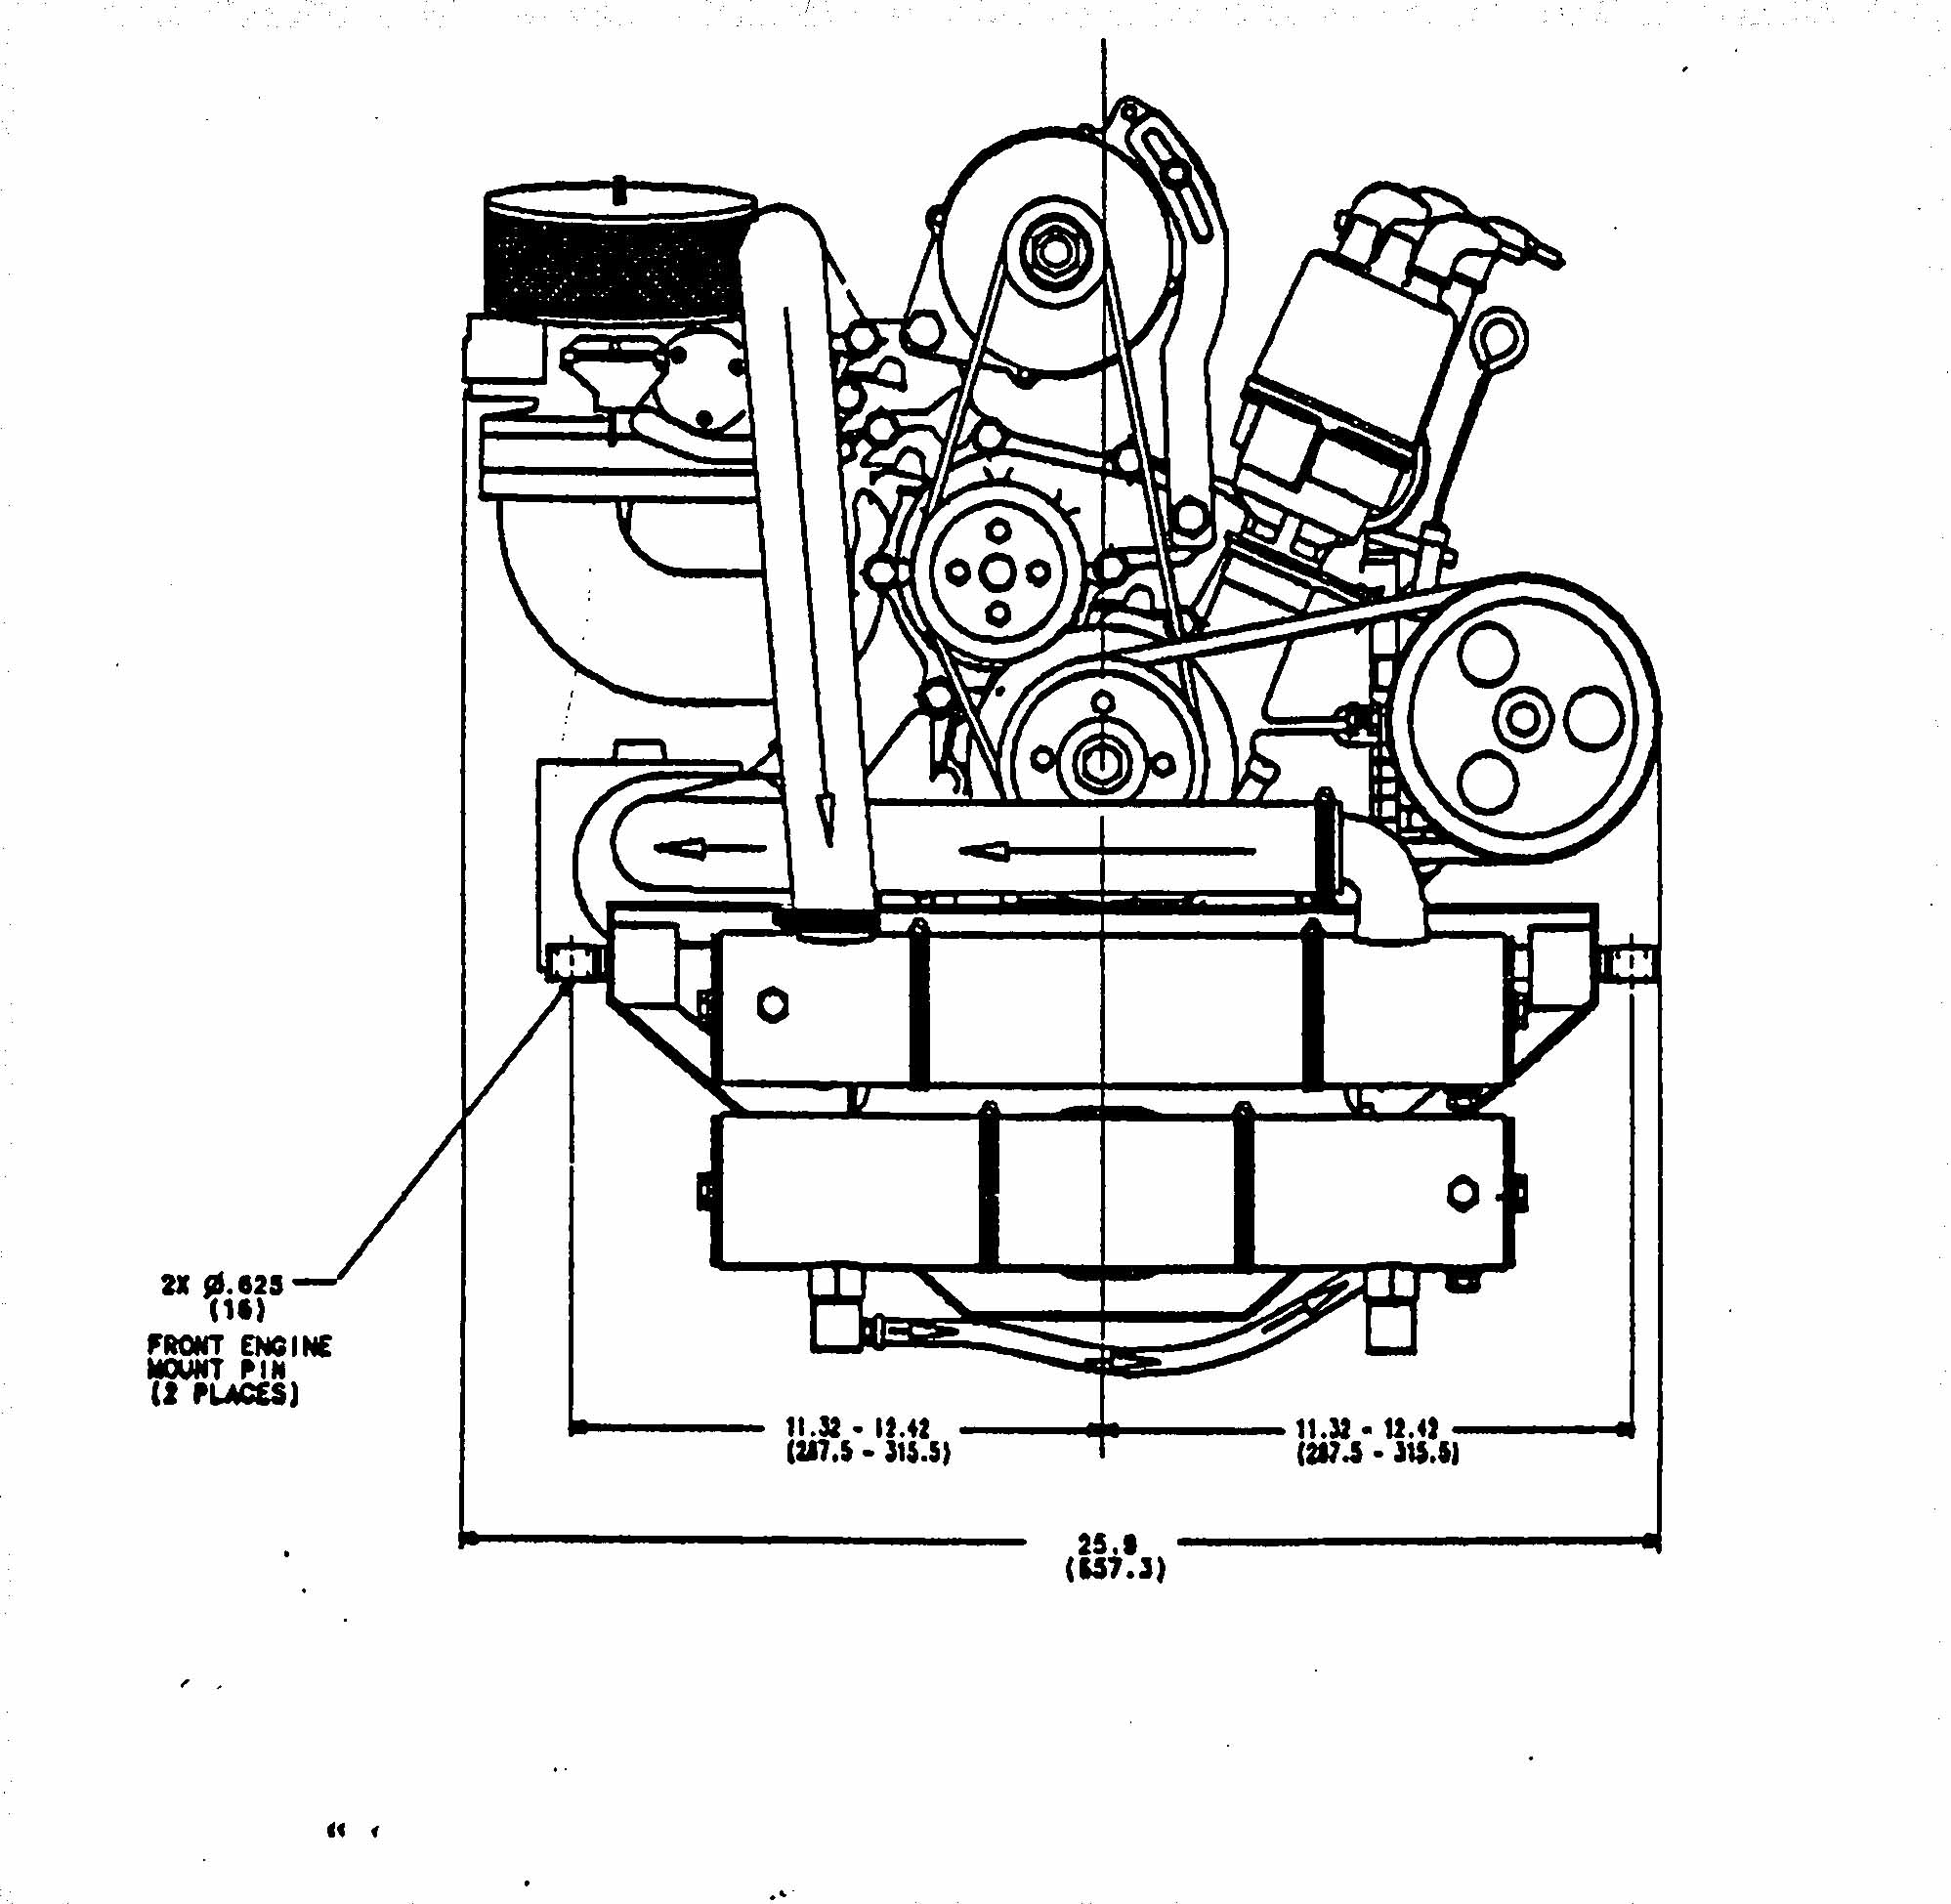 Rx7 13b Engine Diagram Wiring Will Be A Thing Phillips Sae J560 Mazda B 13 Rotary 4wings Com 956 943 5150 Rh Phtemp